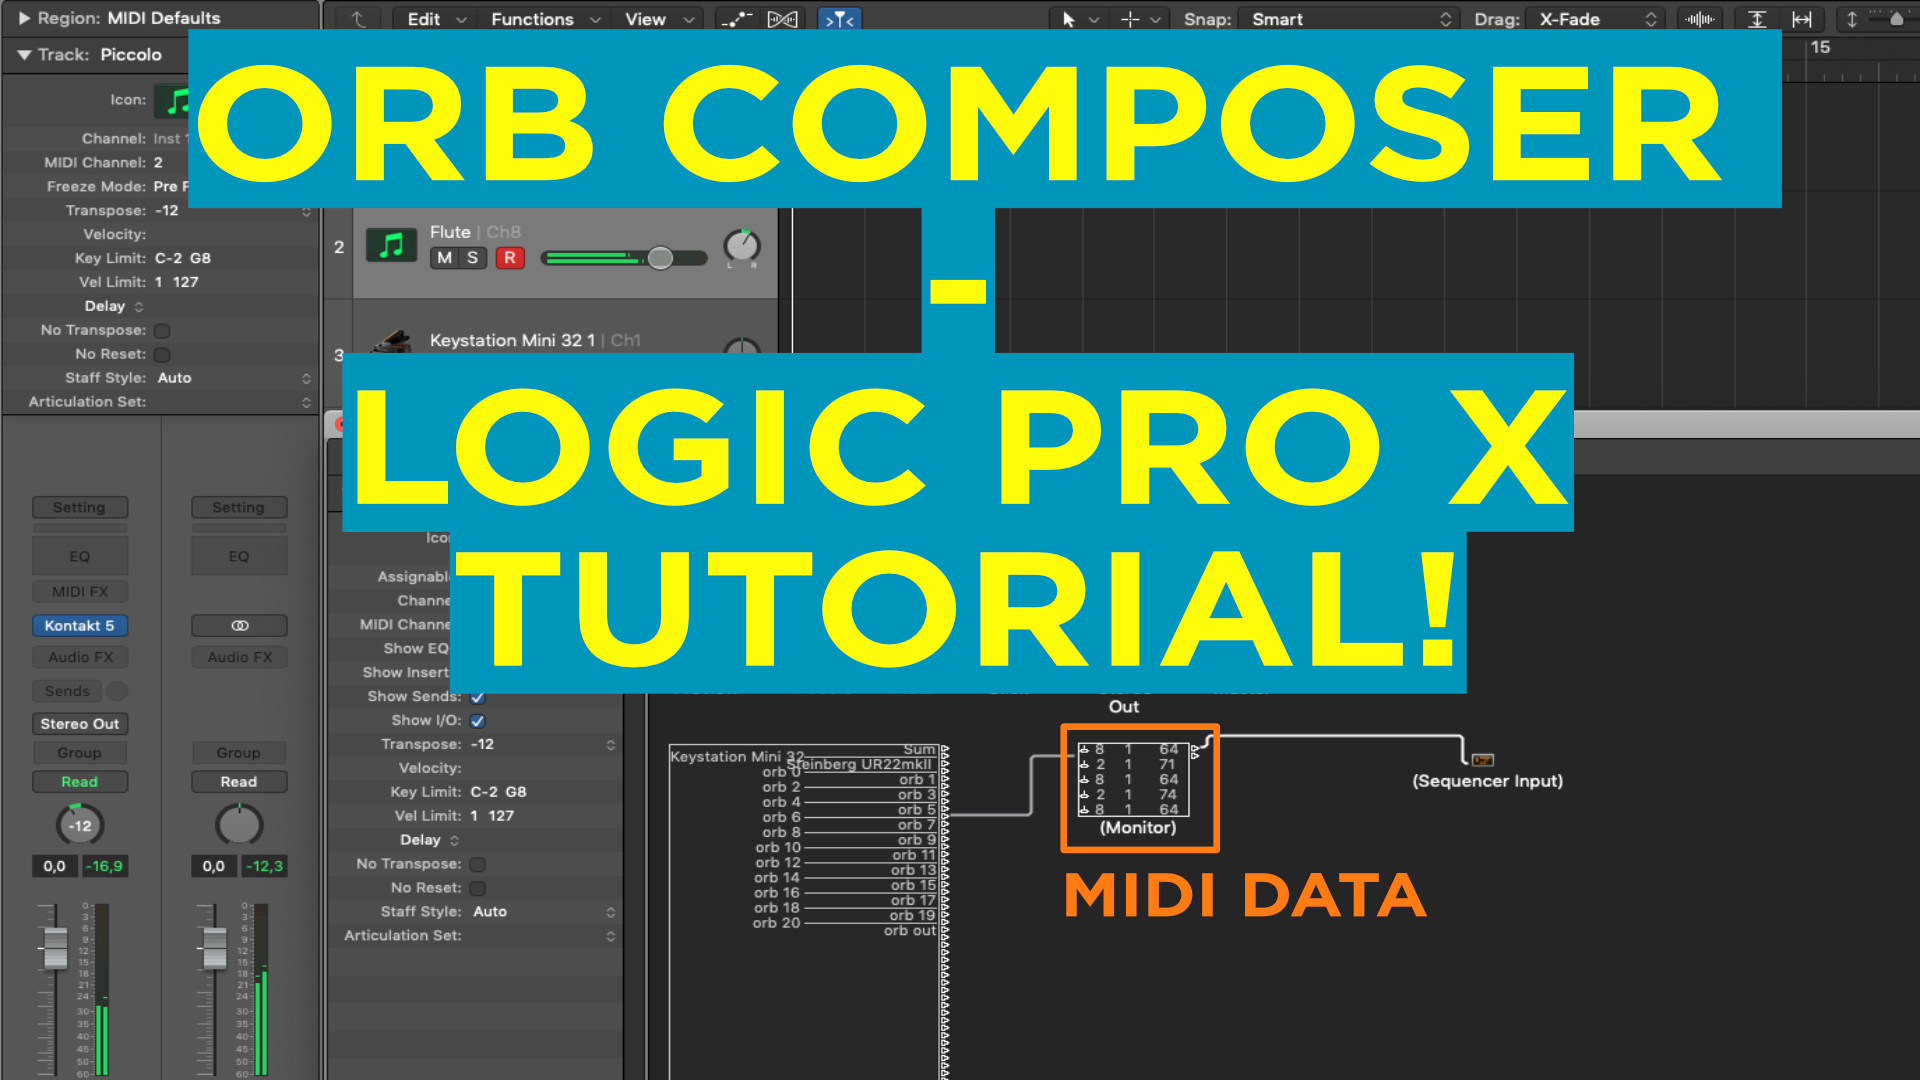 orb_composer_logic_pro_x_tutorial